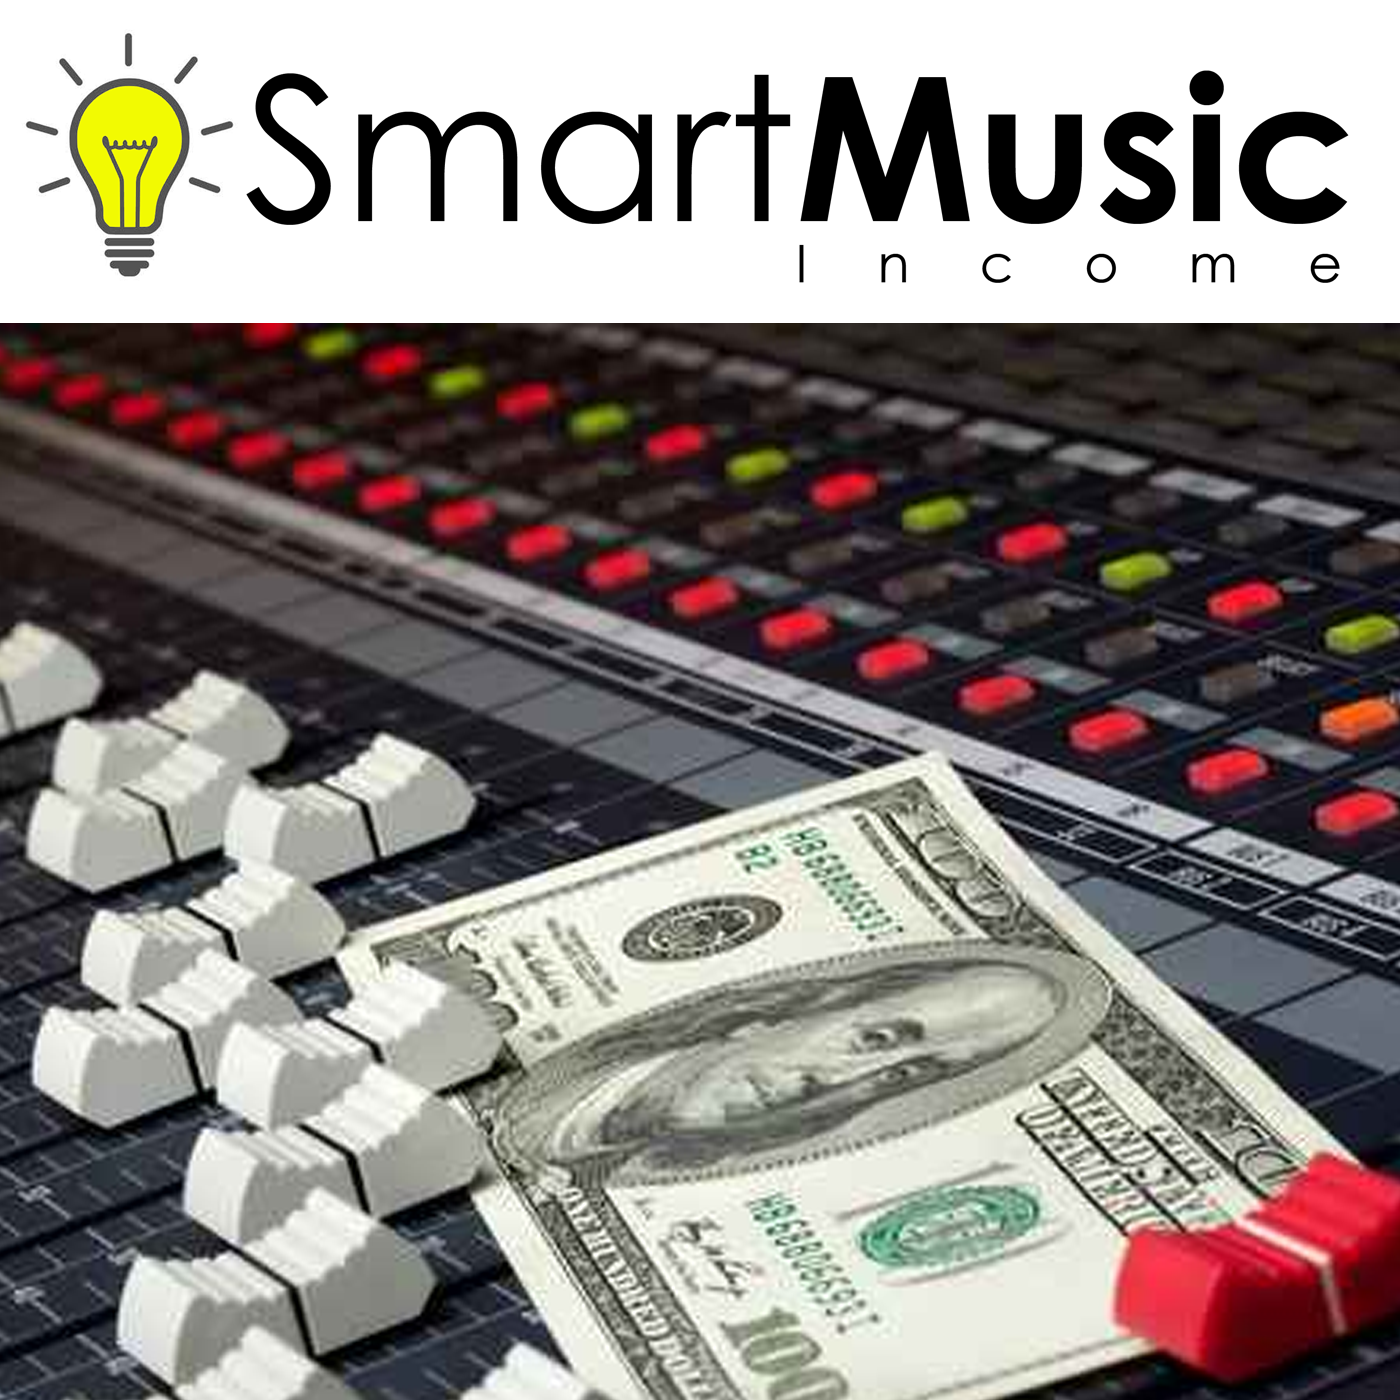 Smart Music Income Podcast - Earn Money Through Royalty Free Music Licensing